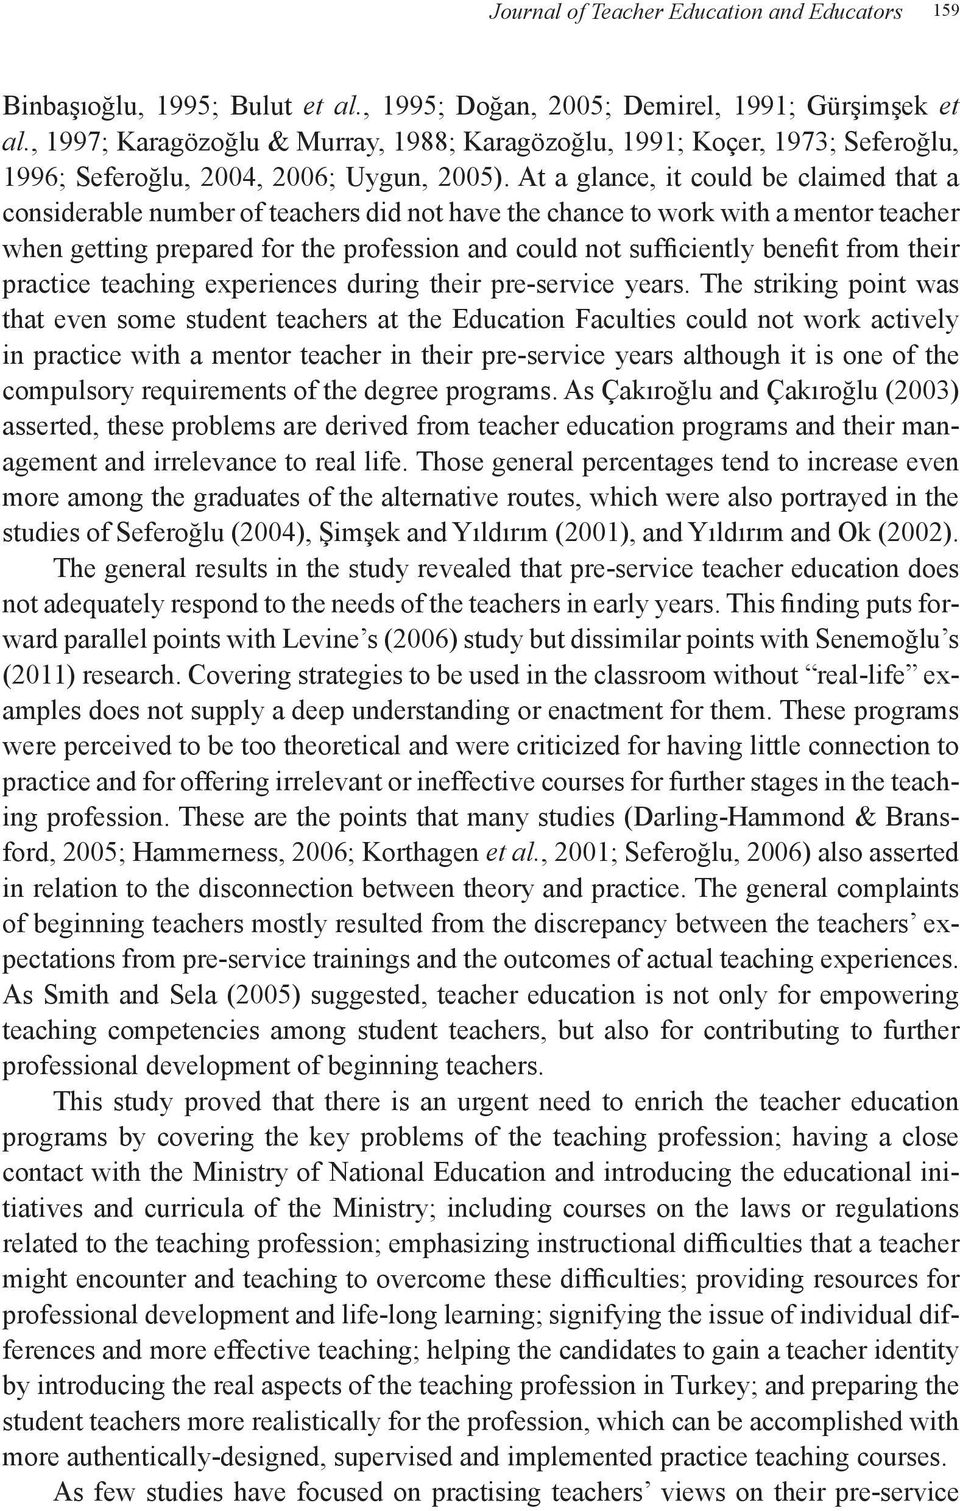 At a glance, it could be claimed that a considerable number of teachers did not have the chance to work with a mentor teacher when getting prepared for the profession and could not sufficiently